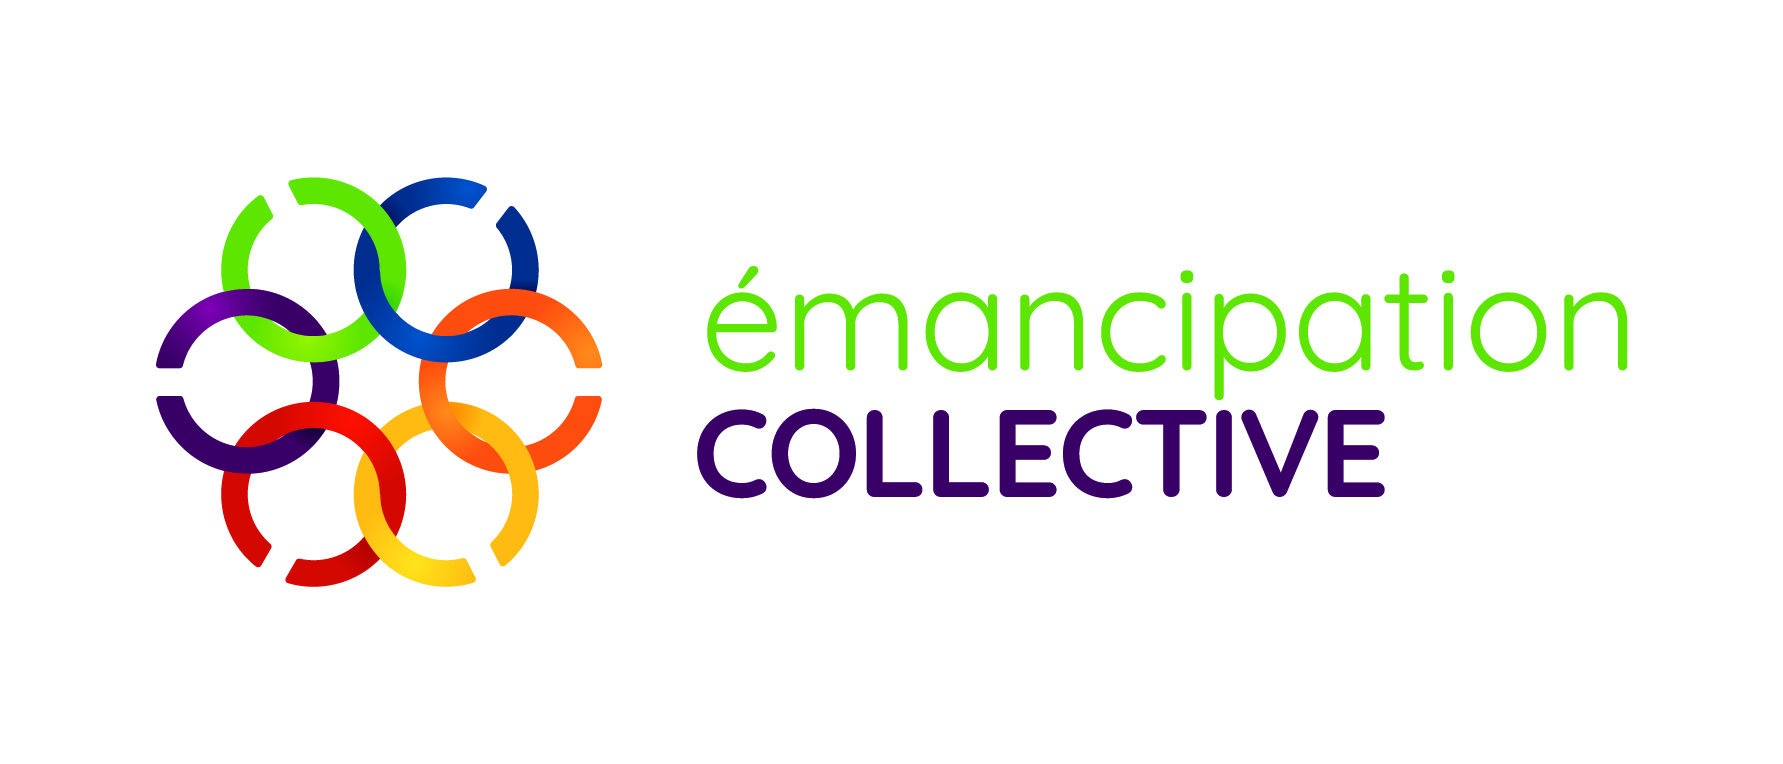 Emancipation collective